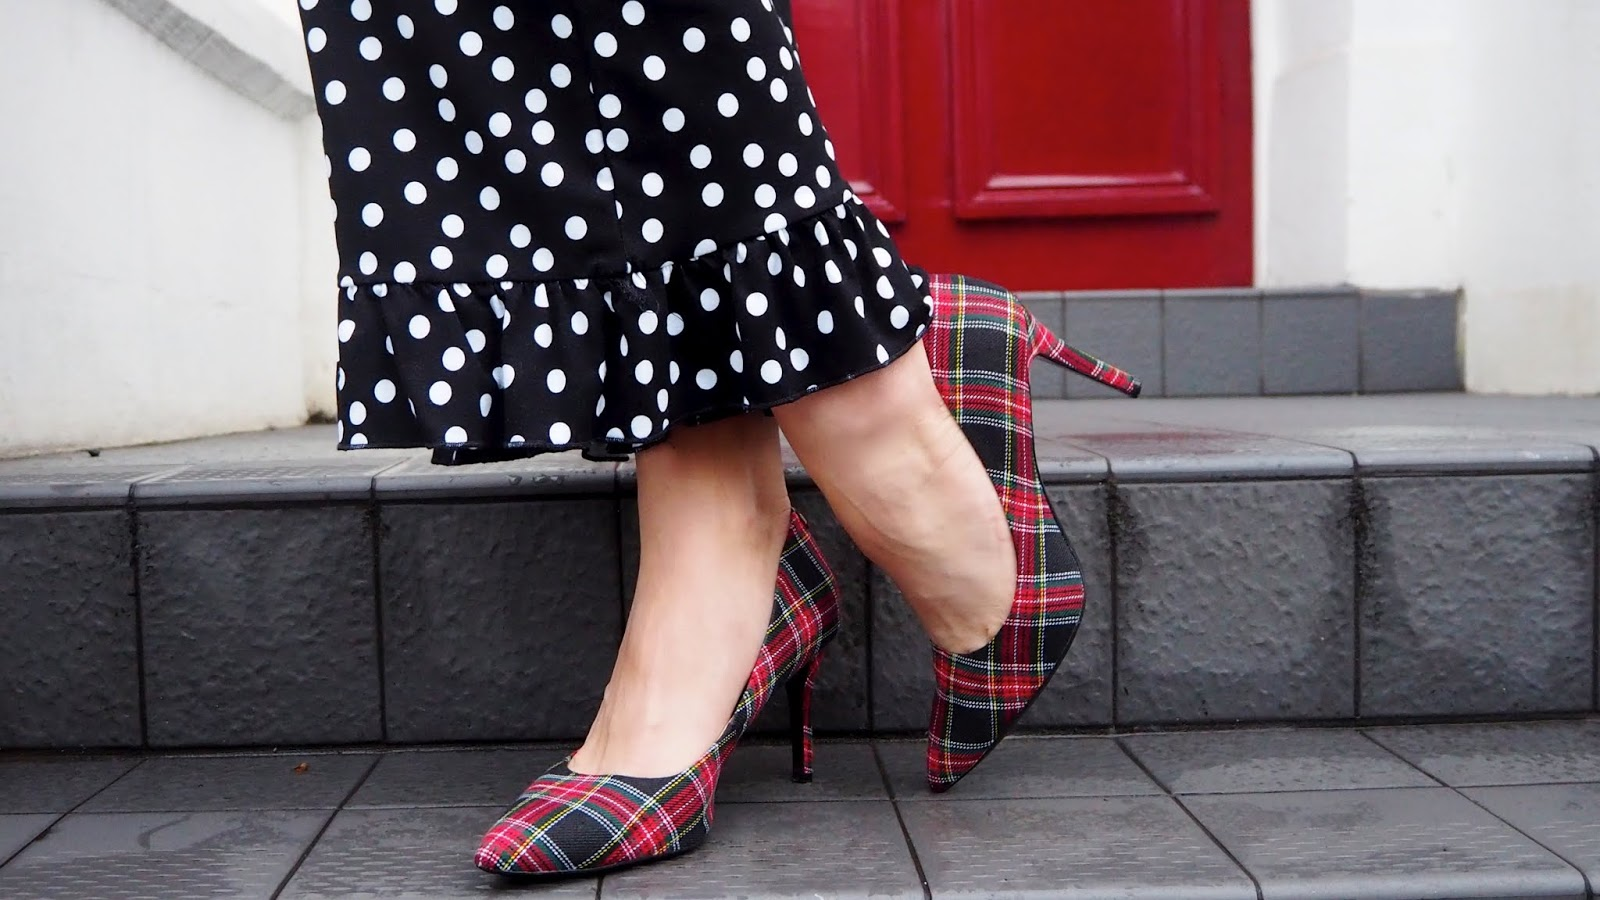 Polka dot ruffle trousers with red plaid shoes